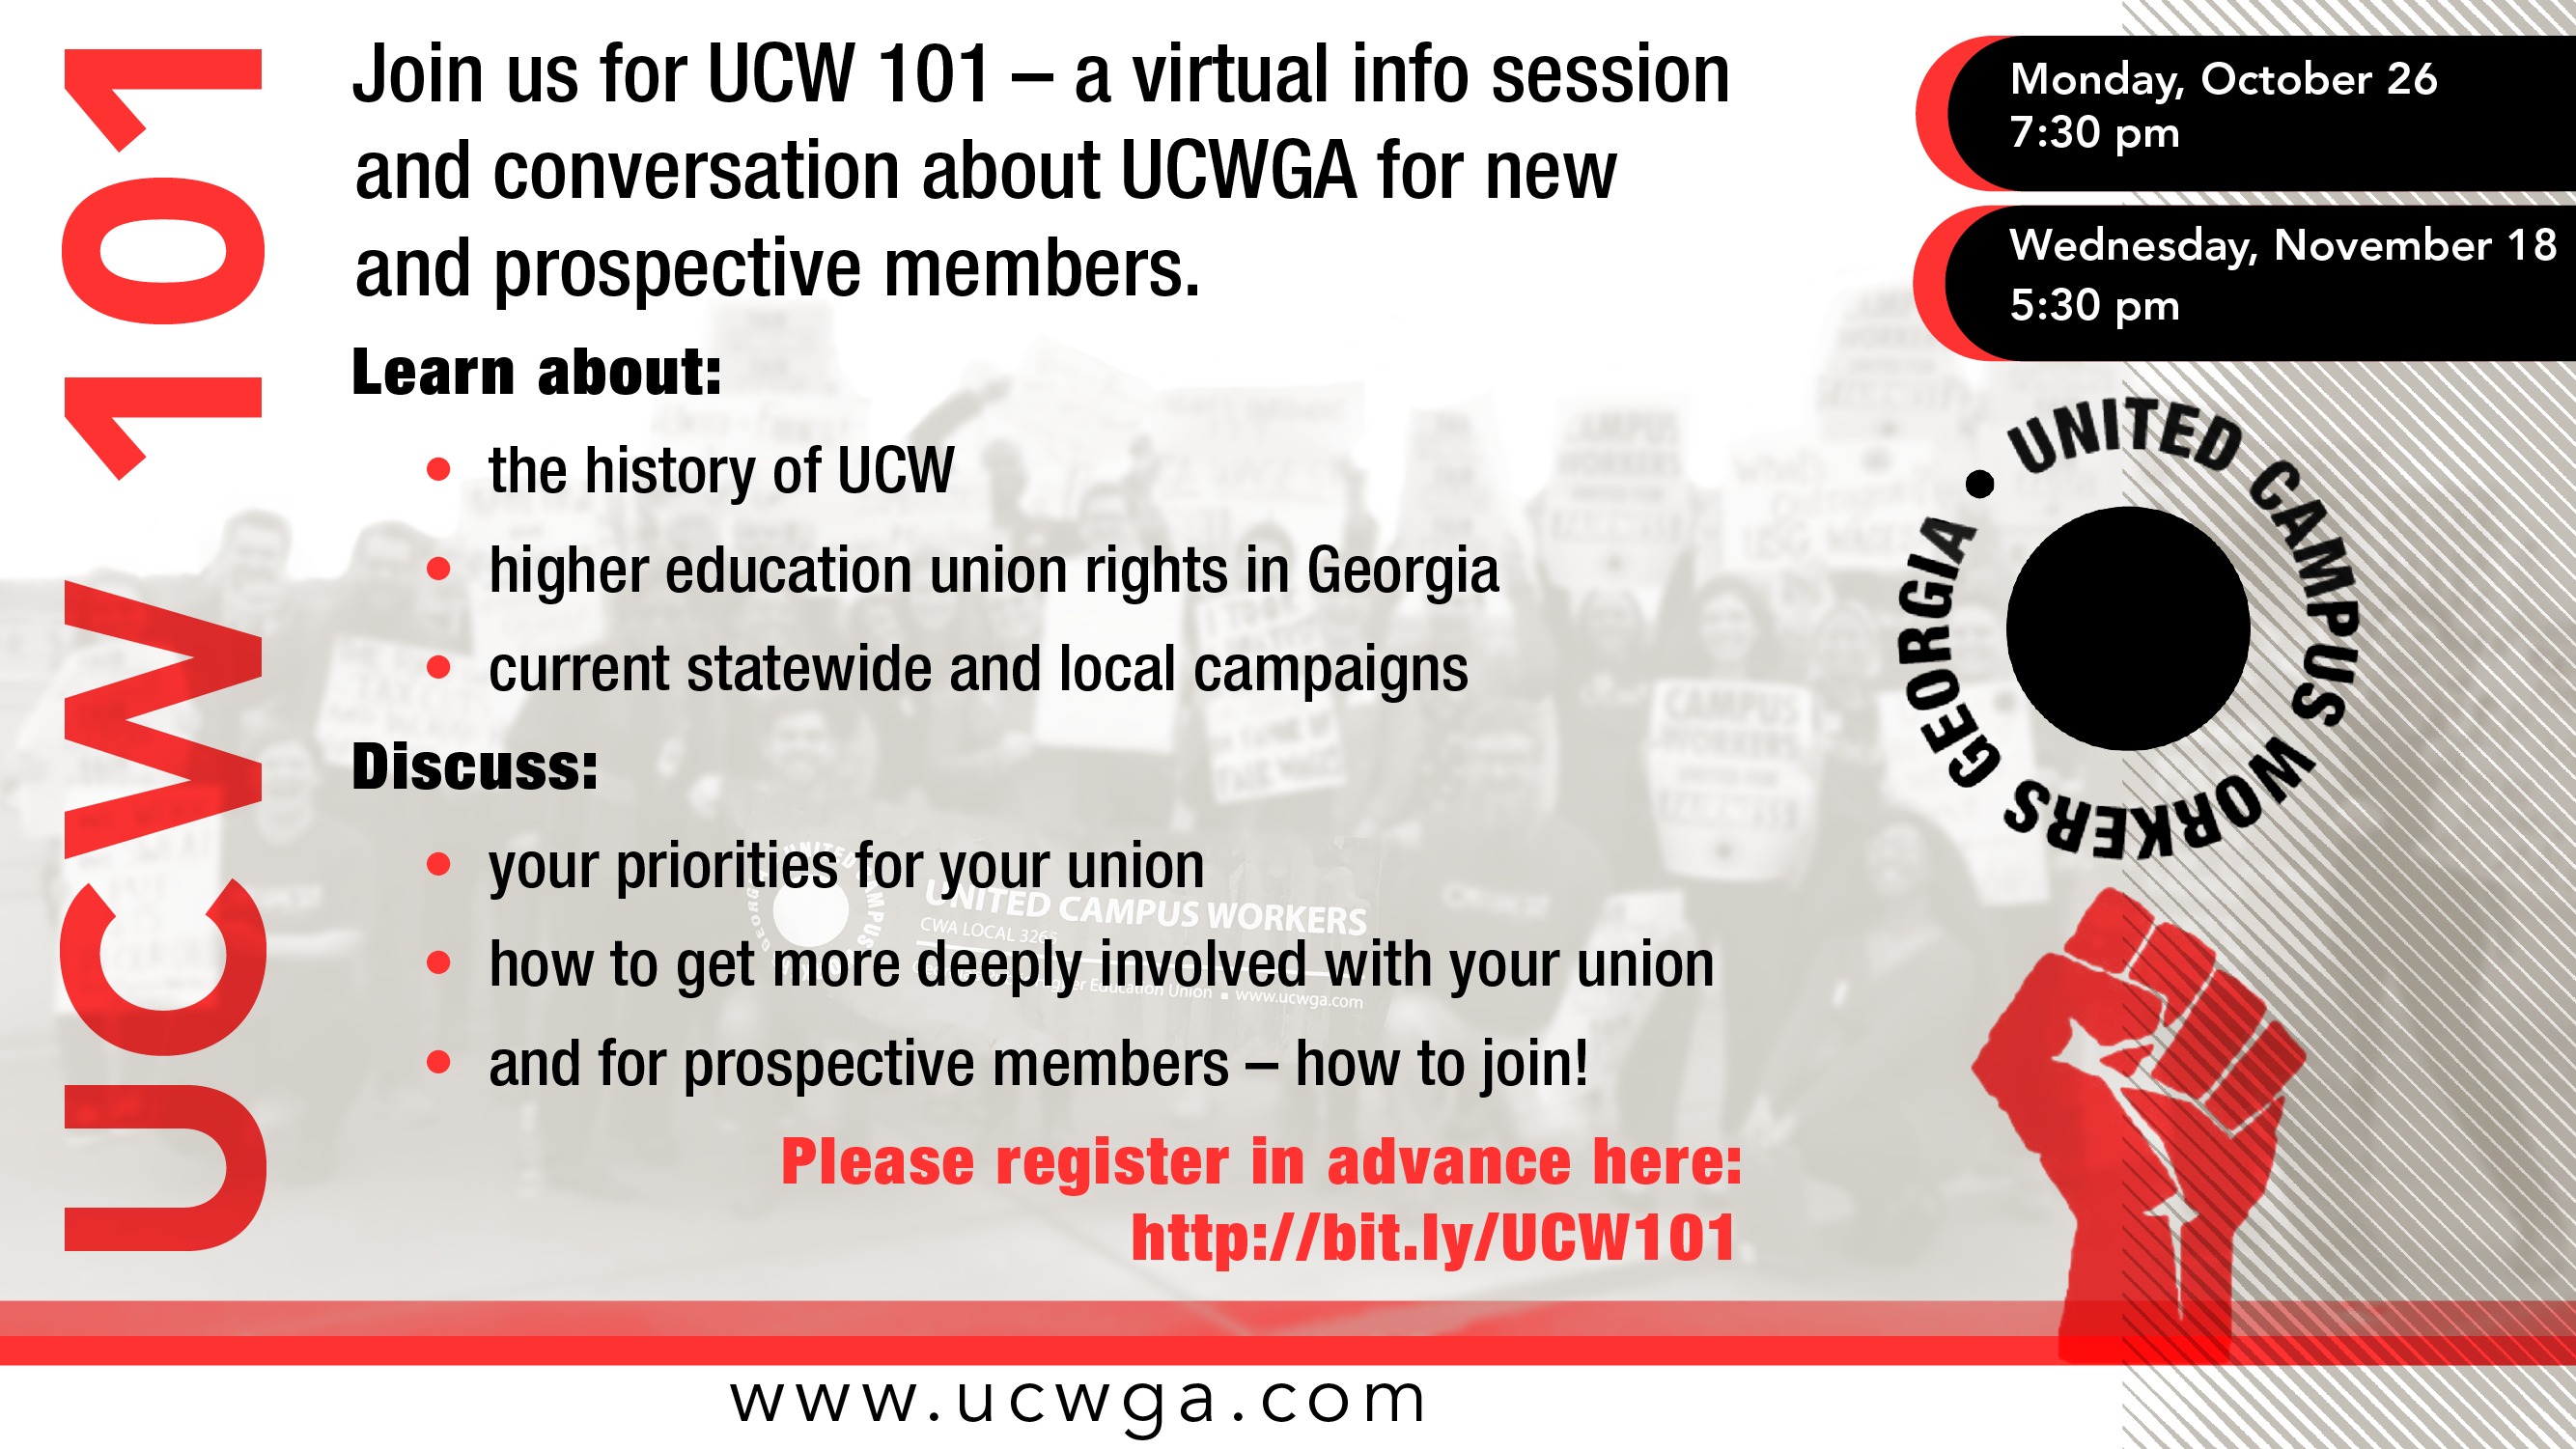 UCW 101 info session flyer